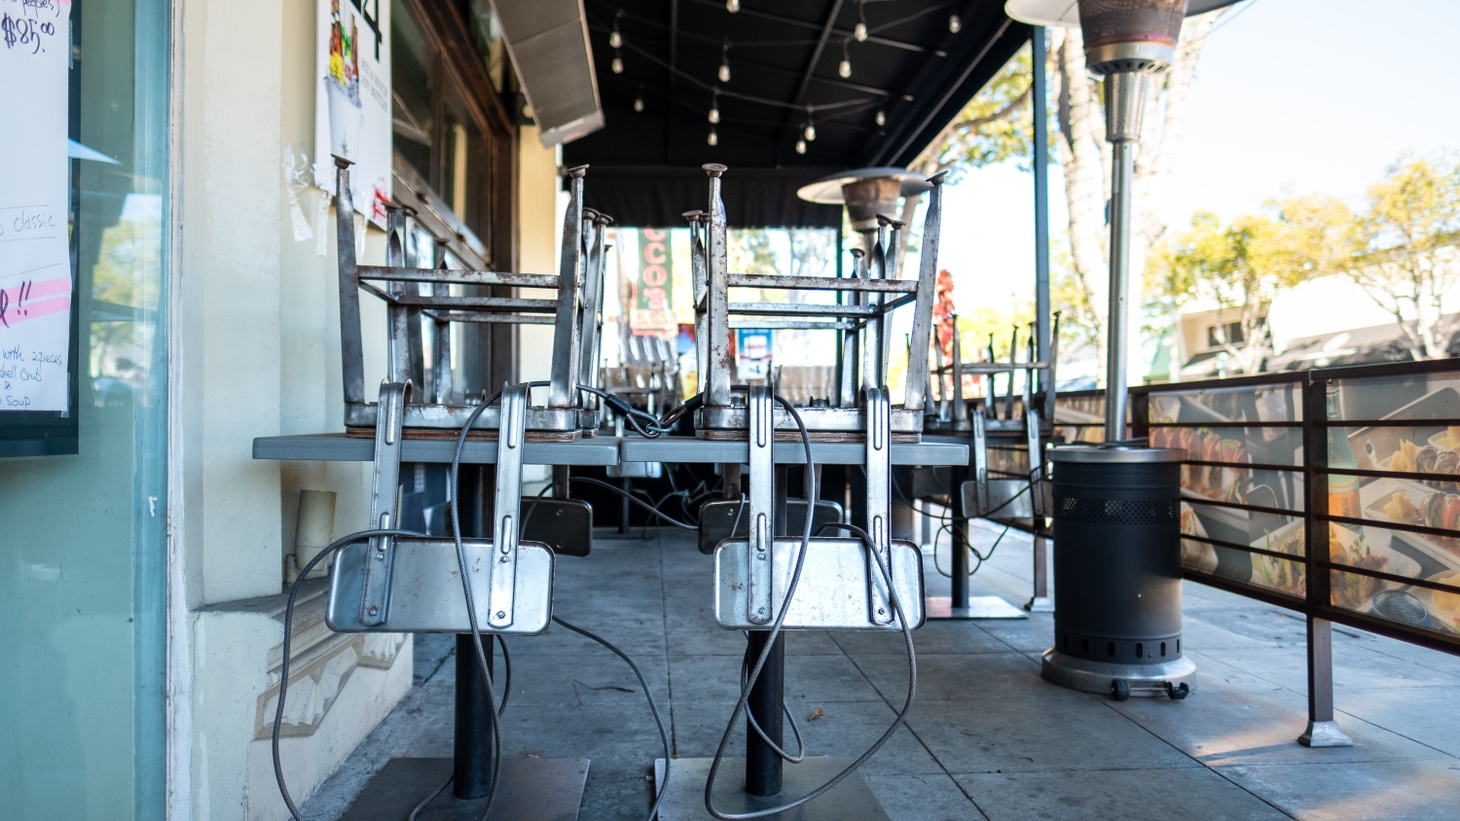 At a Japanese restaurant in Culver City, California, chairs sit on top of tables at the outdoor dining area, January 21, 2021. Outdoor dining in the LA area was banned starting in mid-December. But late January 2021, Gov. Gavin Newsom is lifting his statewide stay-at-home order.